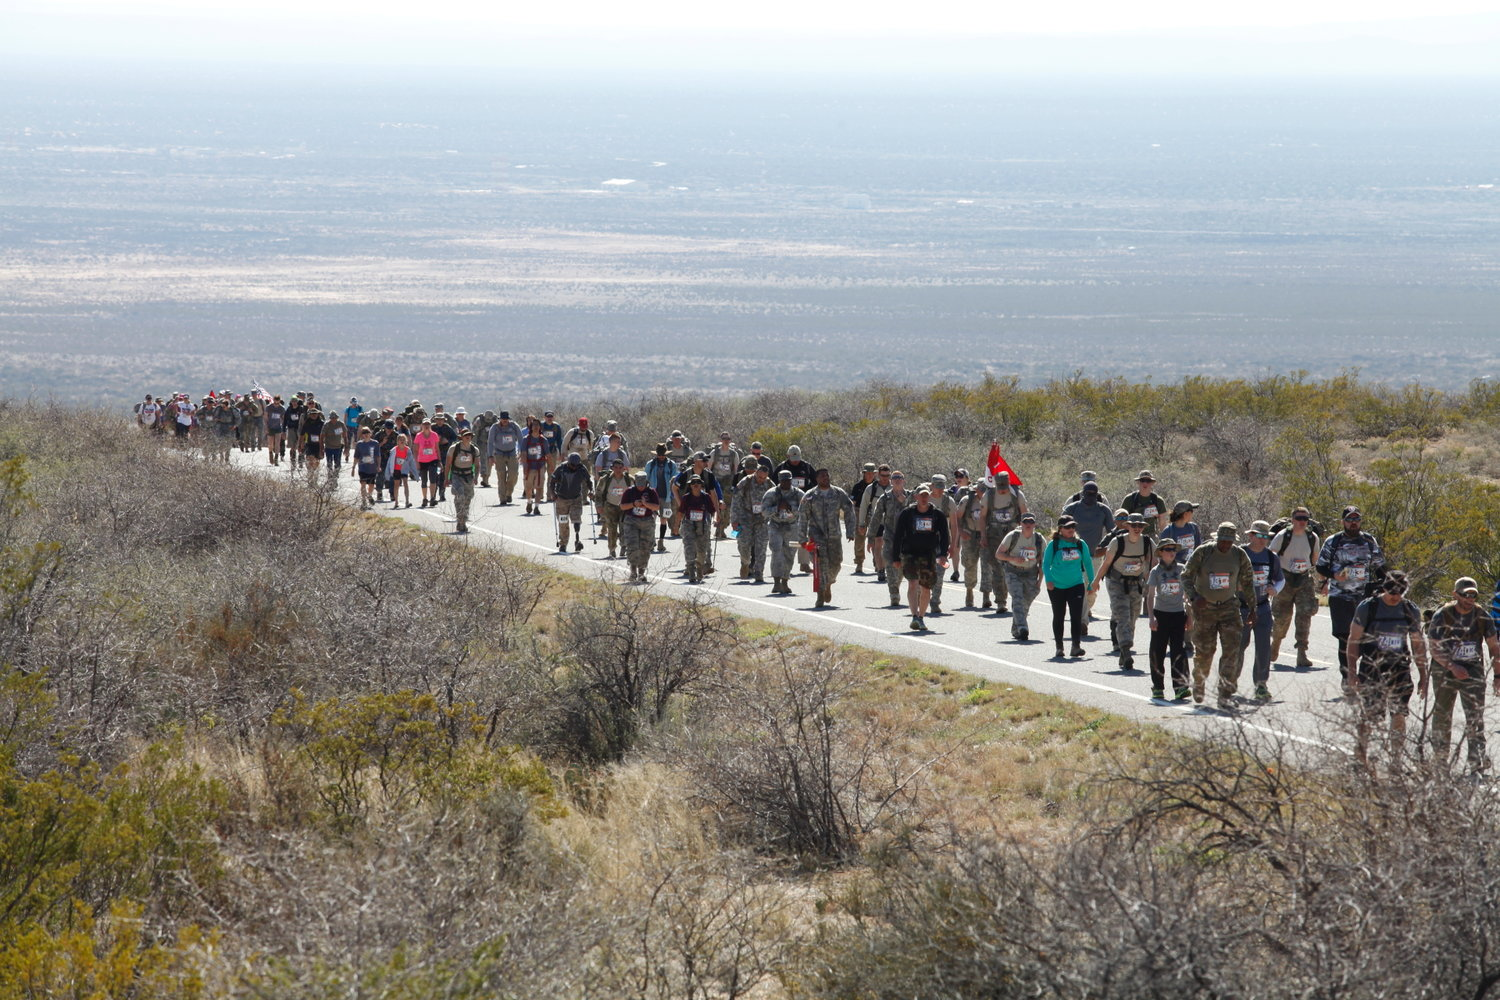 The Bataan Memorial Death March at White Sands Missile Range planned for this weekend has been canceled.